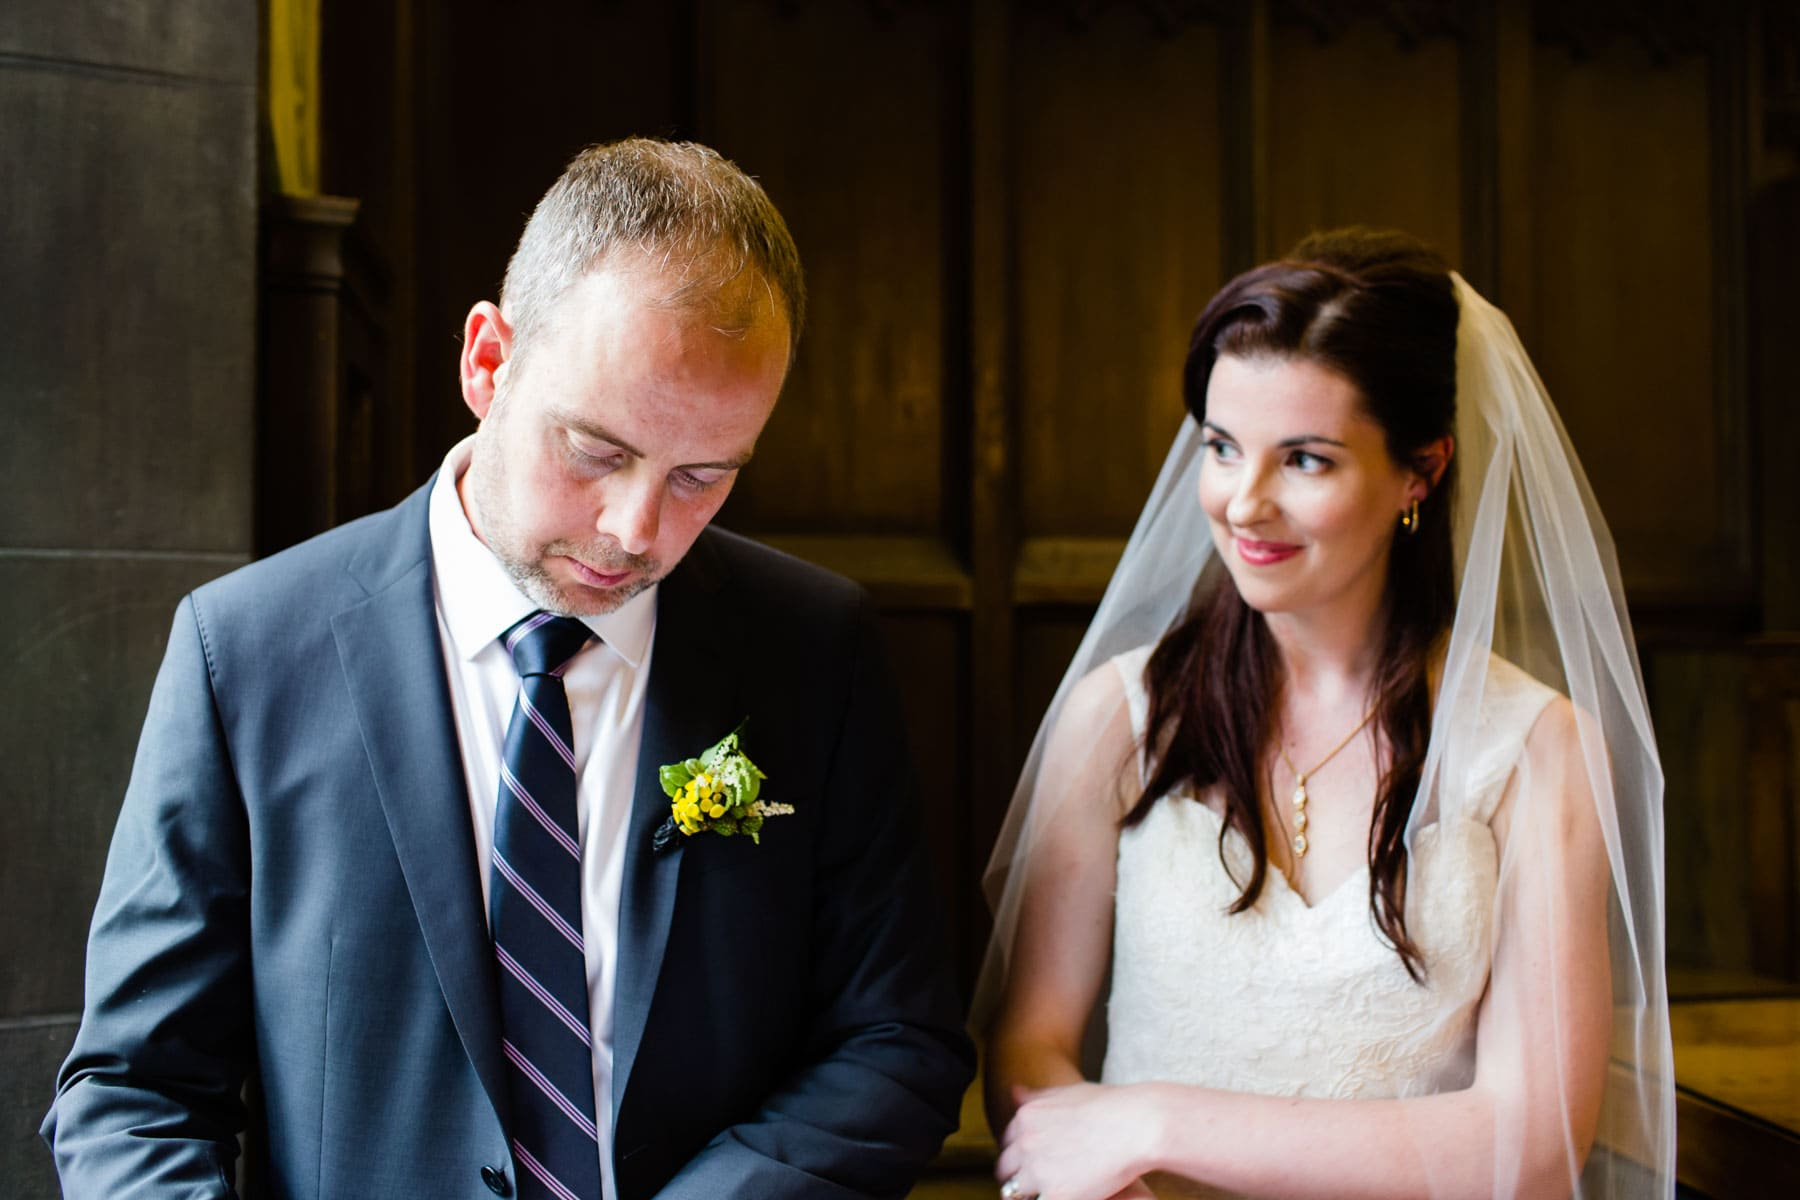 The bride watches the groom signing the marriage documents in this Hart House wedding photo.